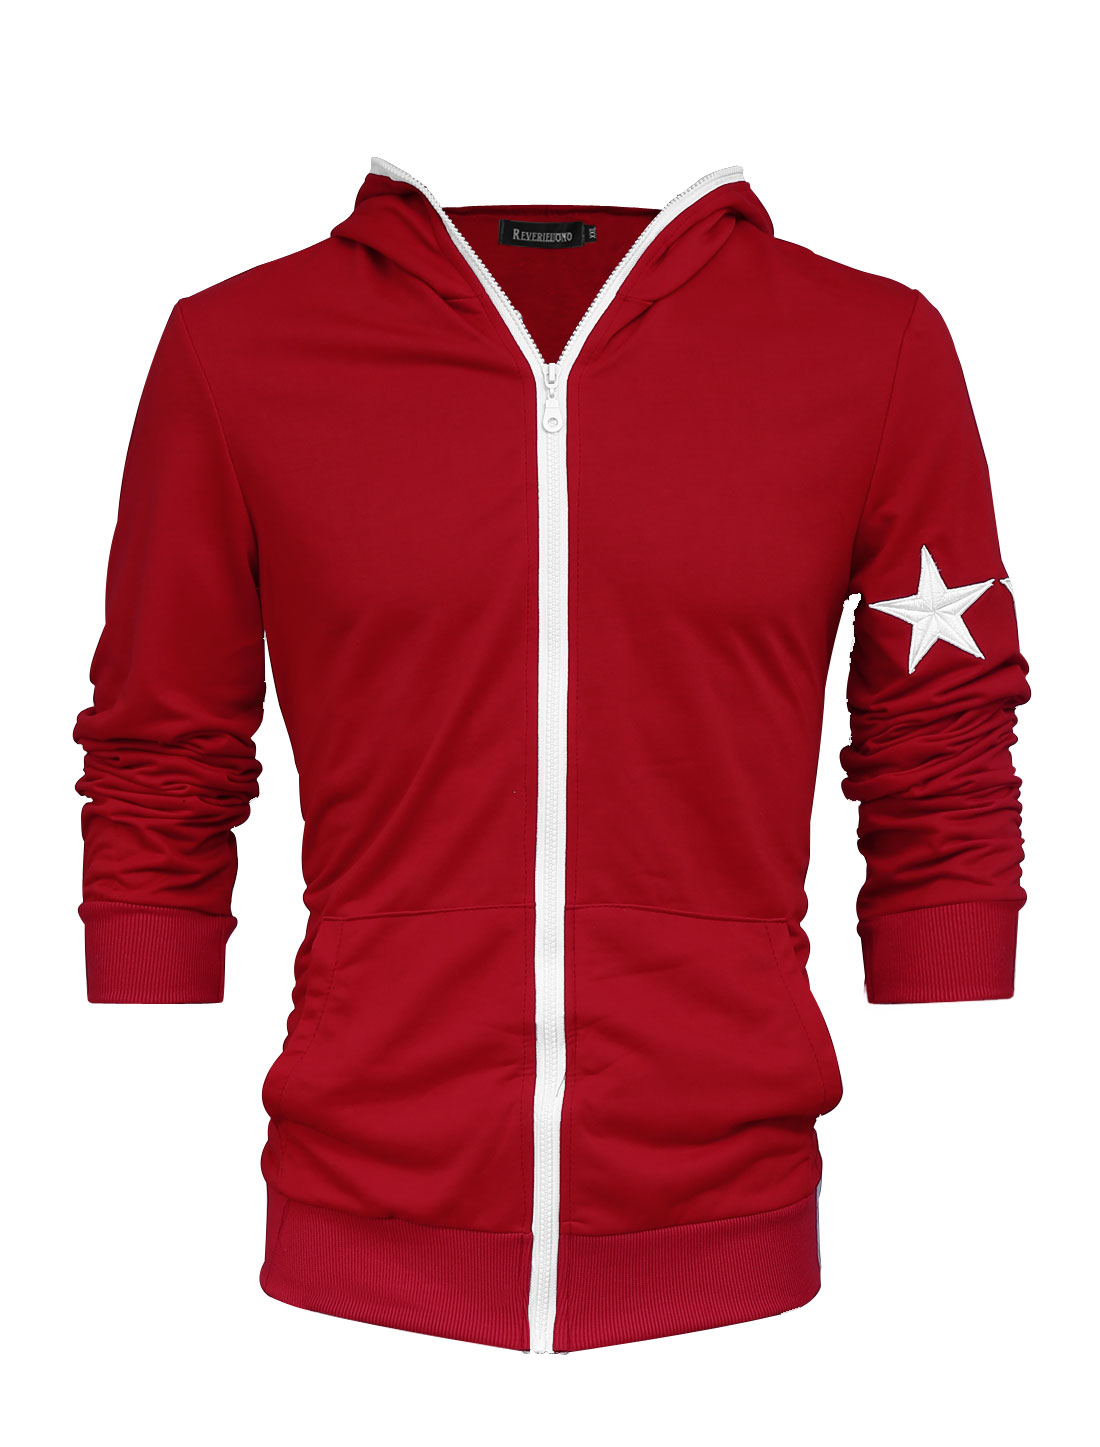 Men Trendy Zip Up Stars Applique Kangaroo Pockets Thin Hooded Jacket Red M